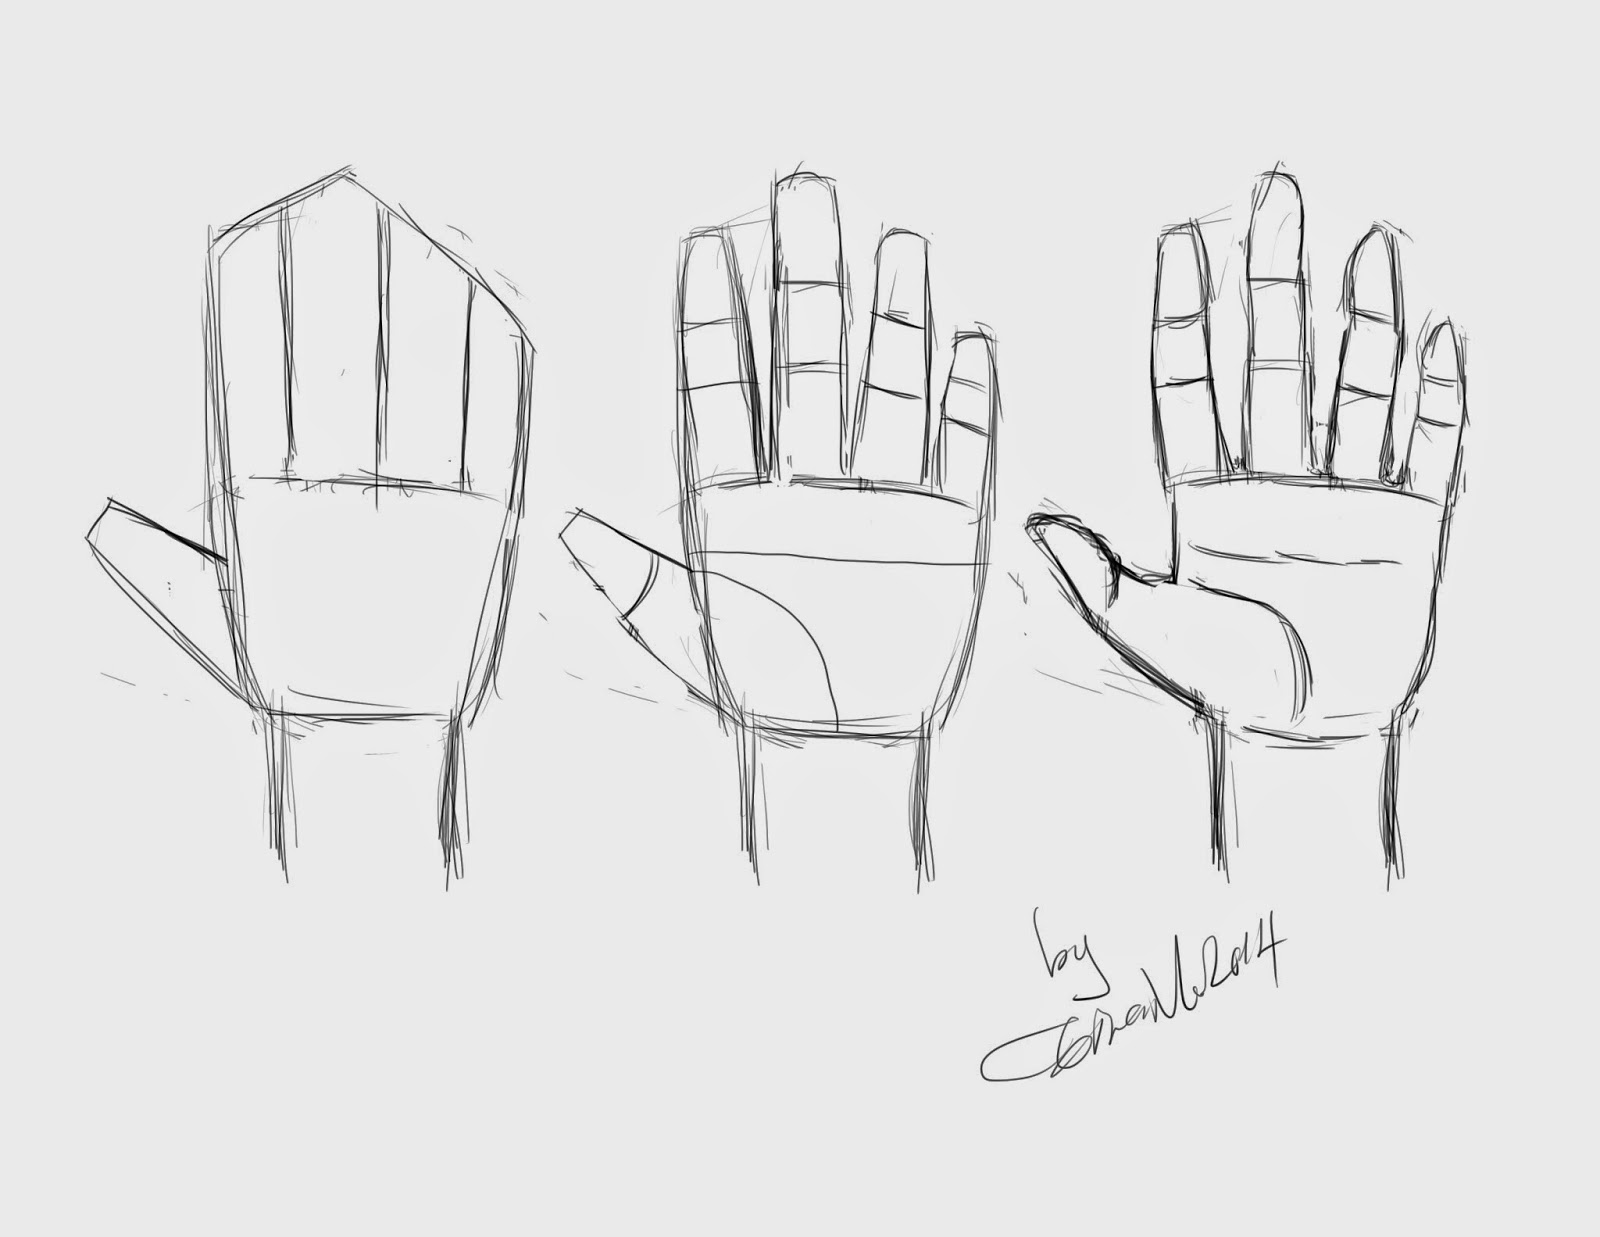 How To Draw A Hand Using Shapes